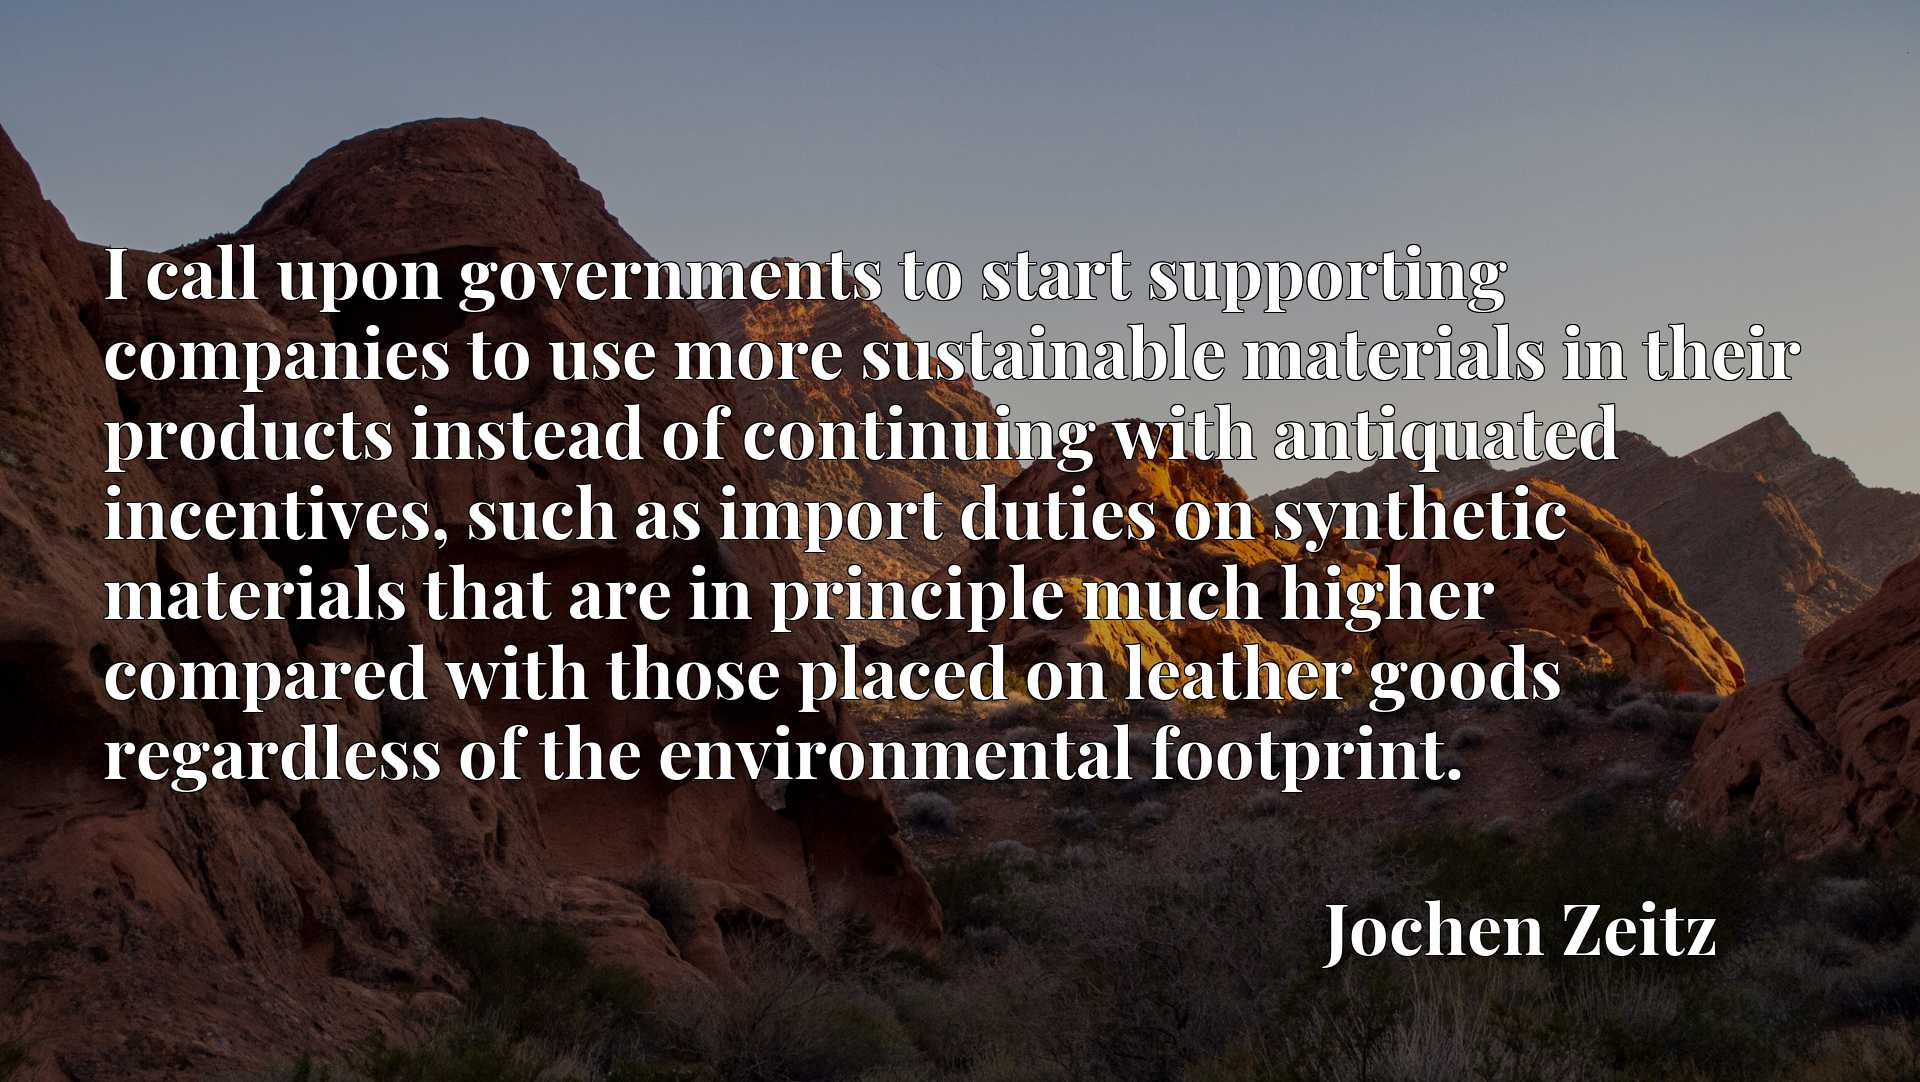 I call upon governments to start supporting companies to use more sustainable materials in their products instead of continuing with antiquated incentives, such as import duties on synthetic materials that are in principle much higher compared with those placed on leather goods regardless of the environmental footprint.